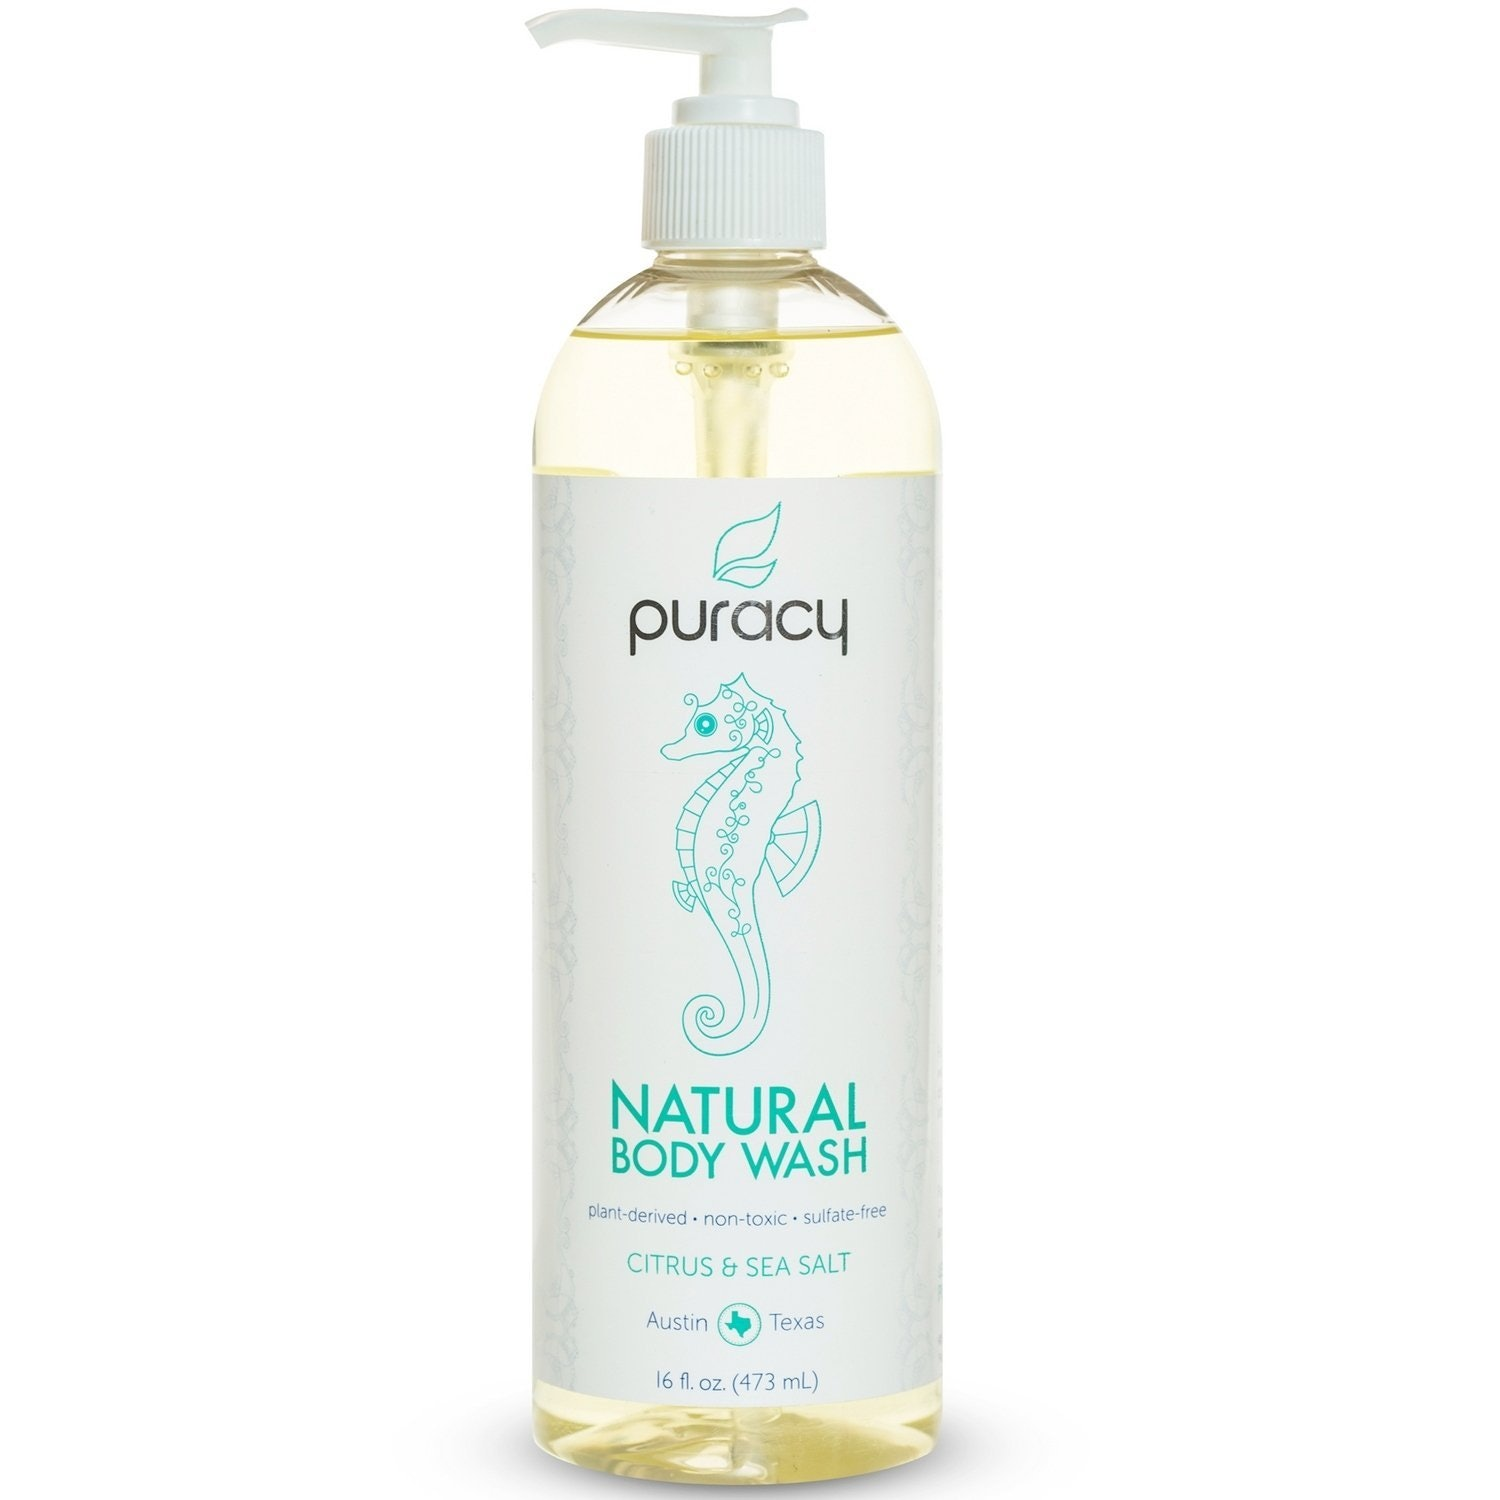 in wash india buy shower lux body spell amazon online smelling magical gel at prices ml low best dp